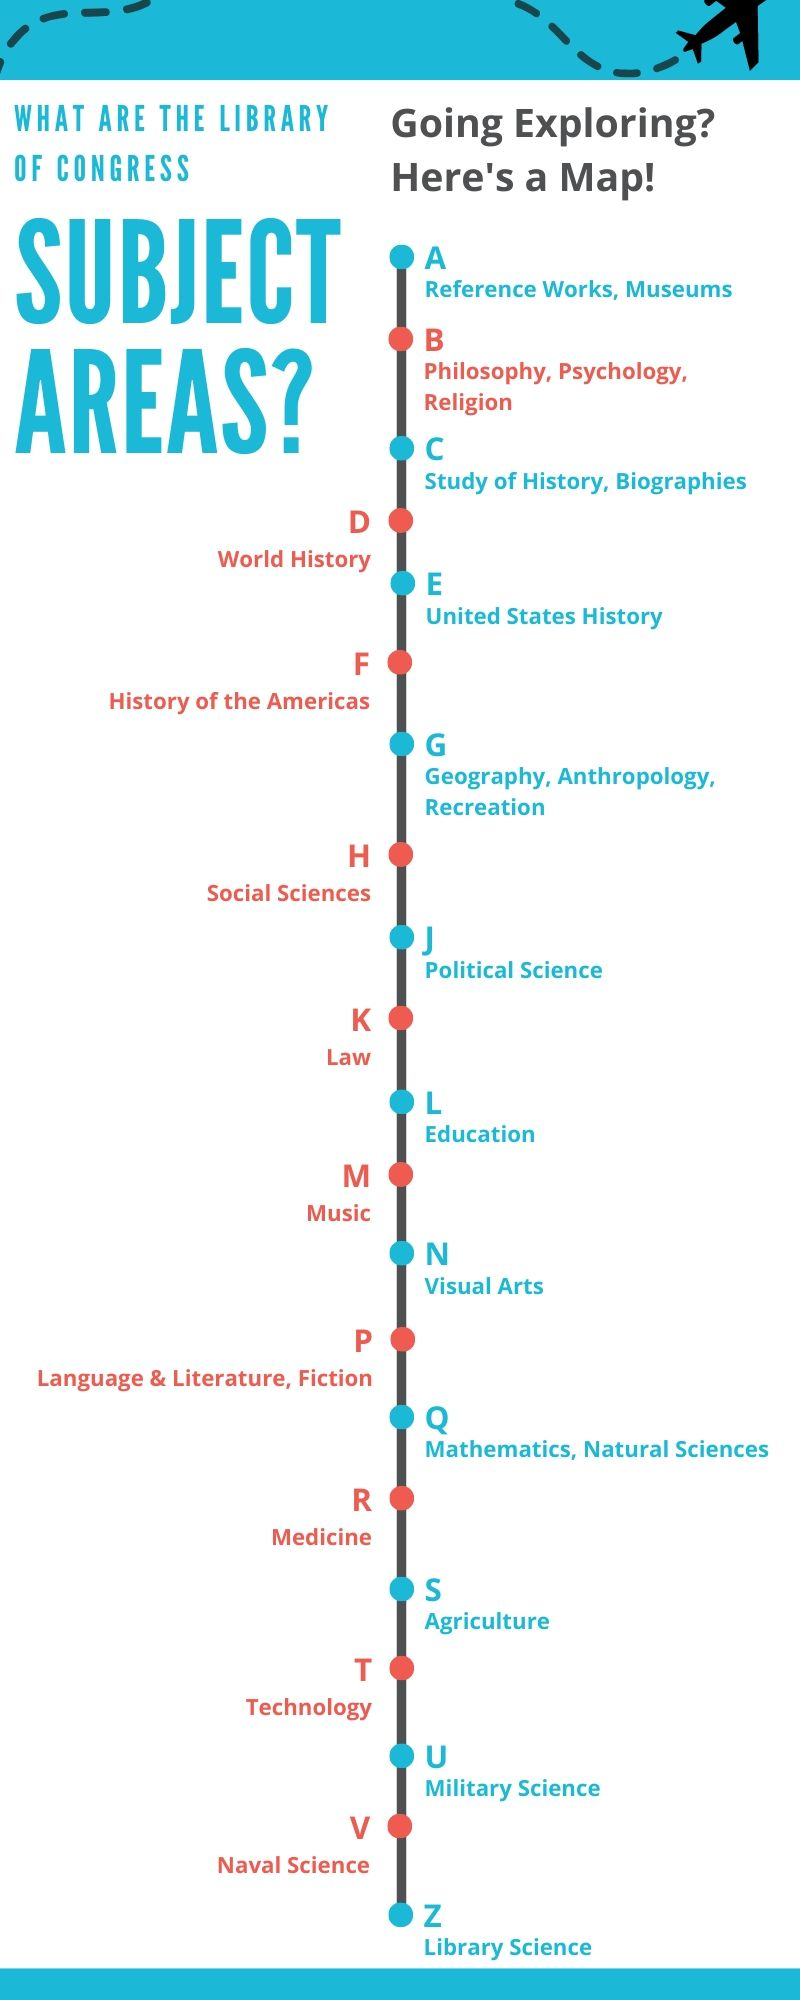 This infographic explains the Library of Congress subject areas in alphabetical order from A, Reference Works and Museums, to Z, Library Science, and everything in between. Every subject is covered by the Library of Congress and can be shelved accordingly.